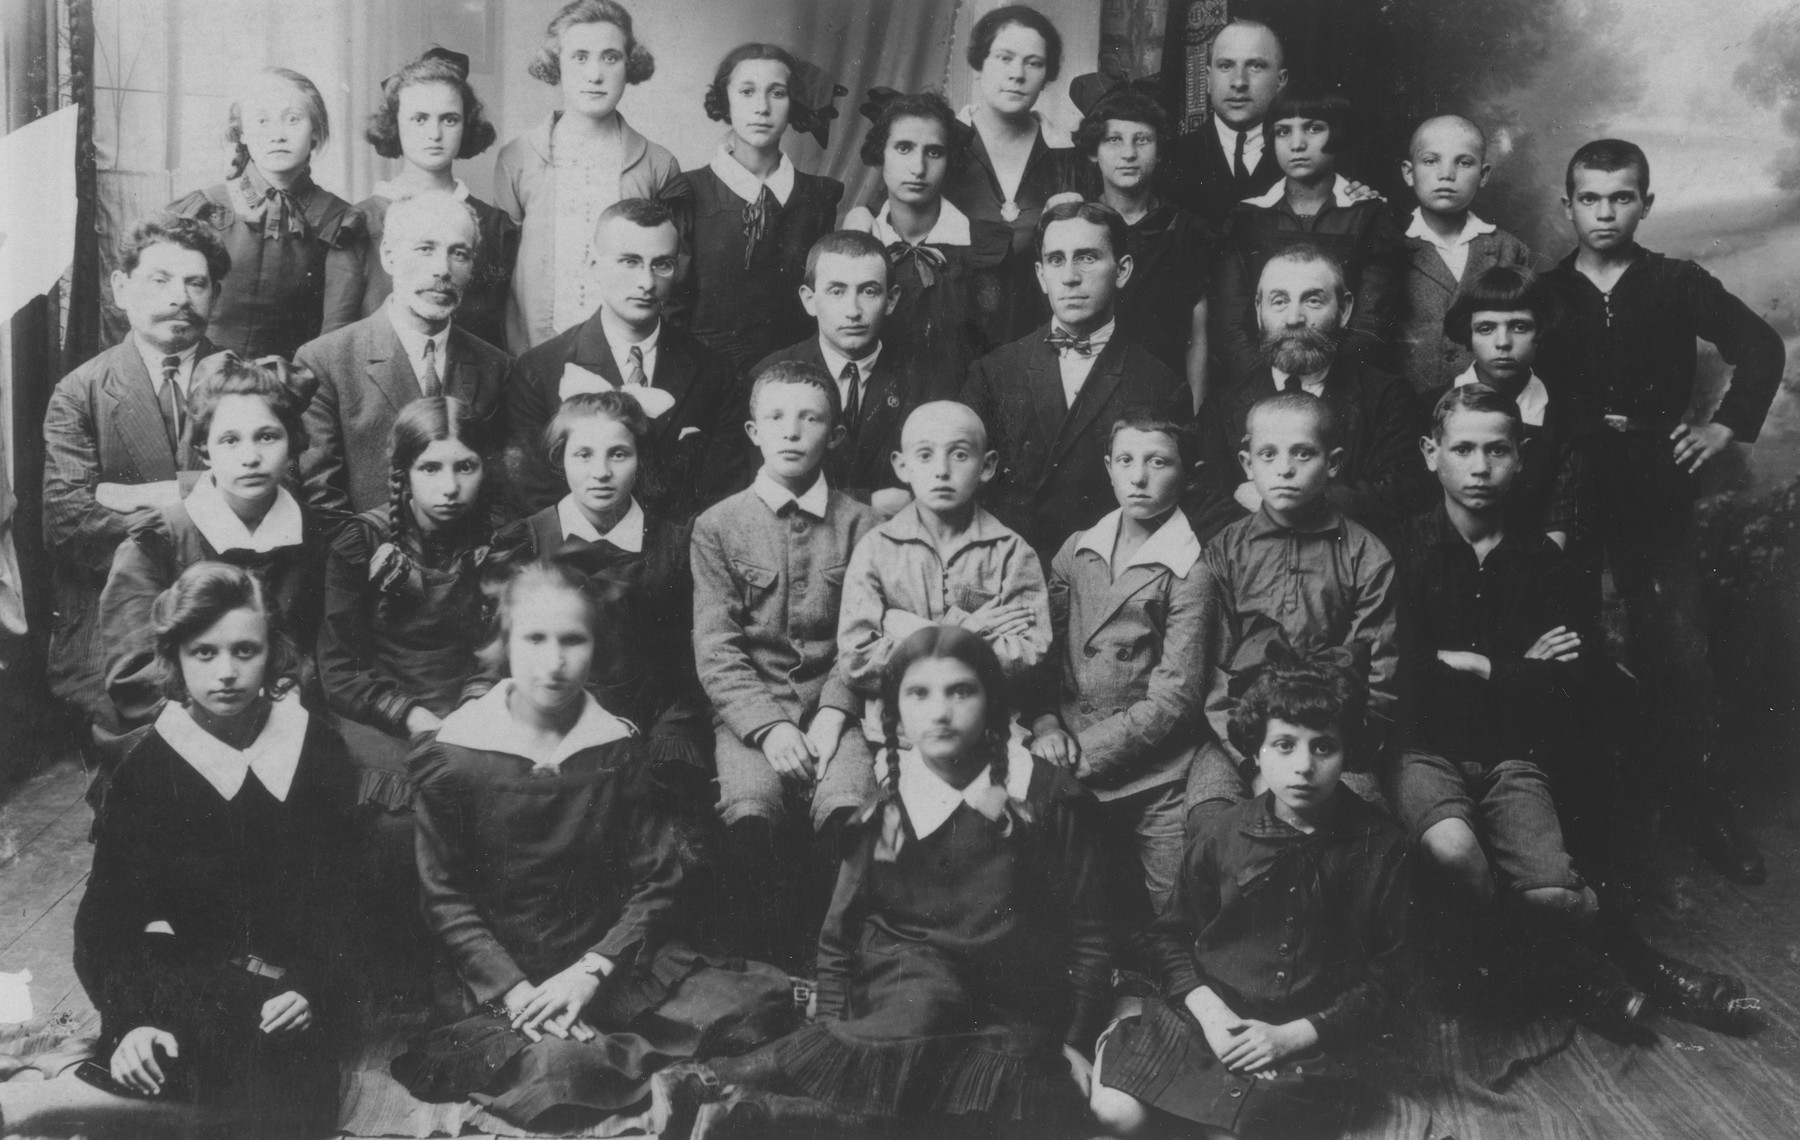 Students and teachers at the Tarbut school in Nowogrodek.